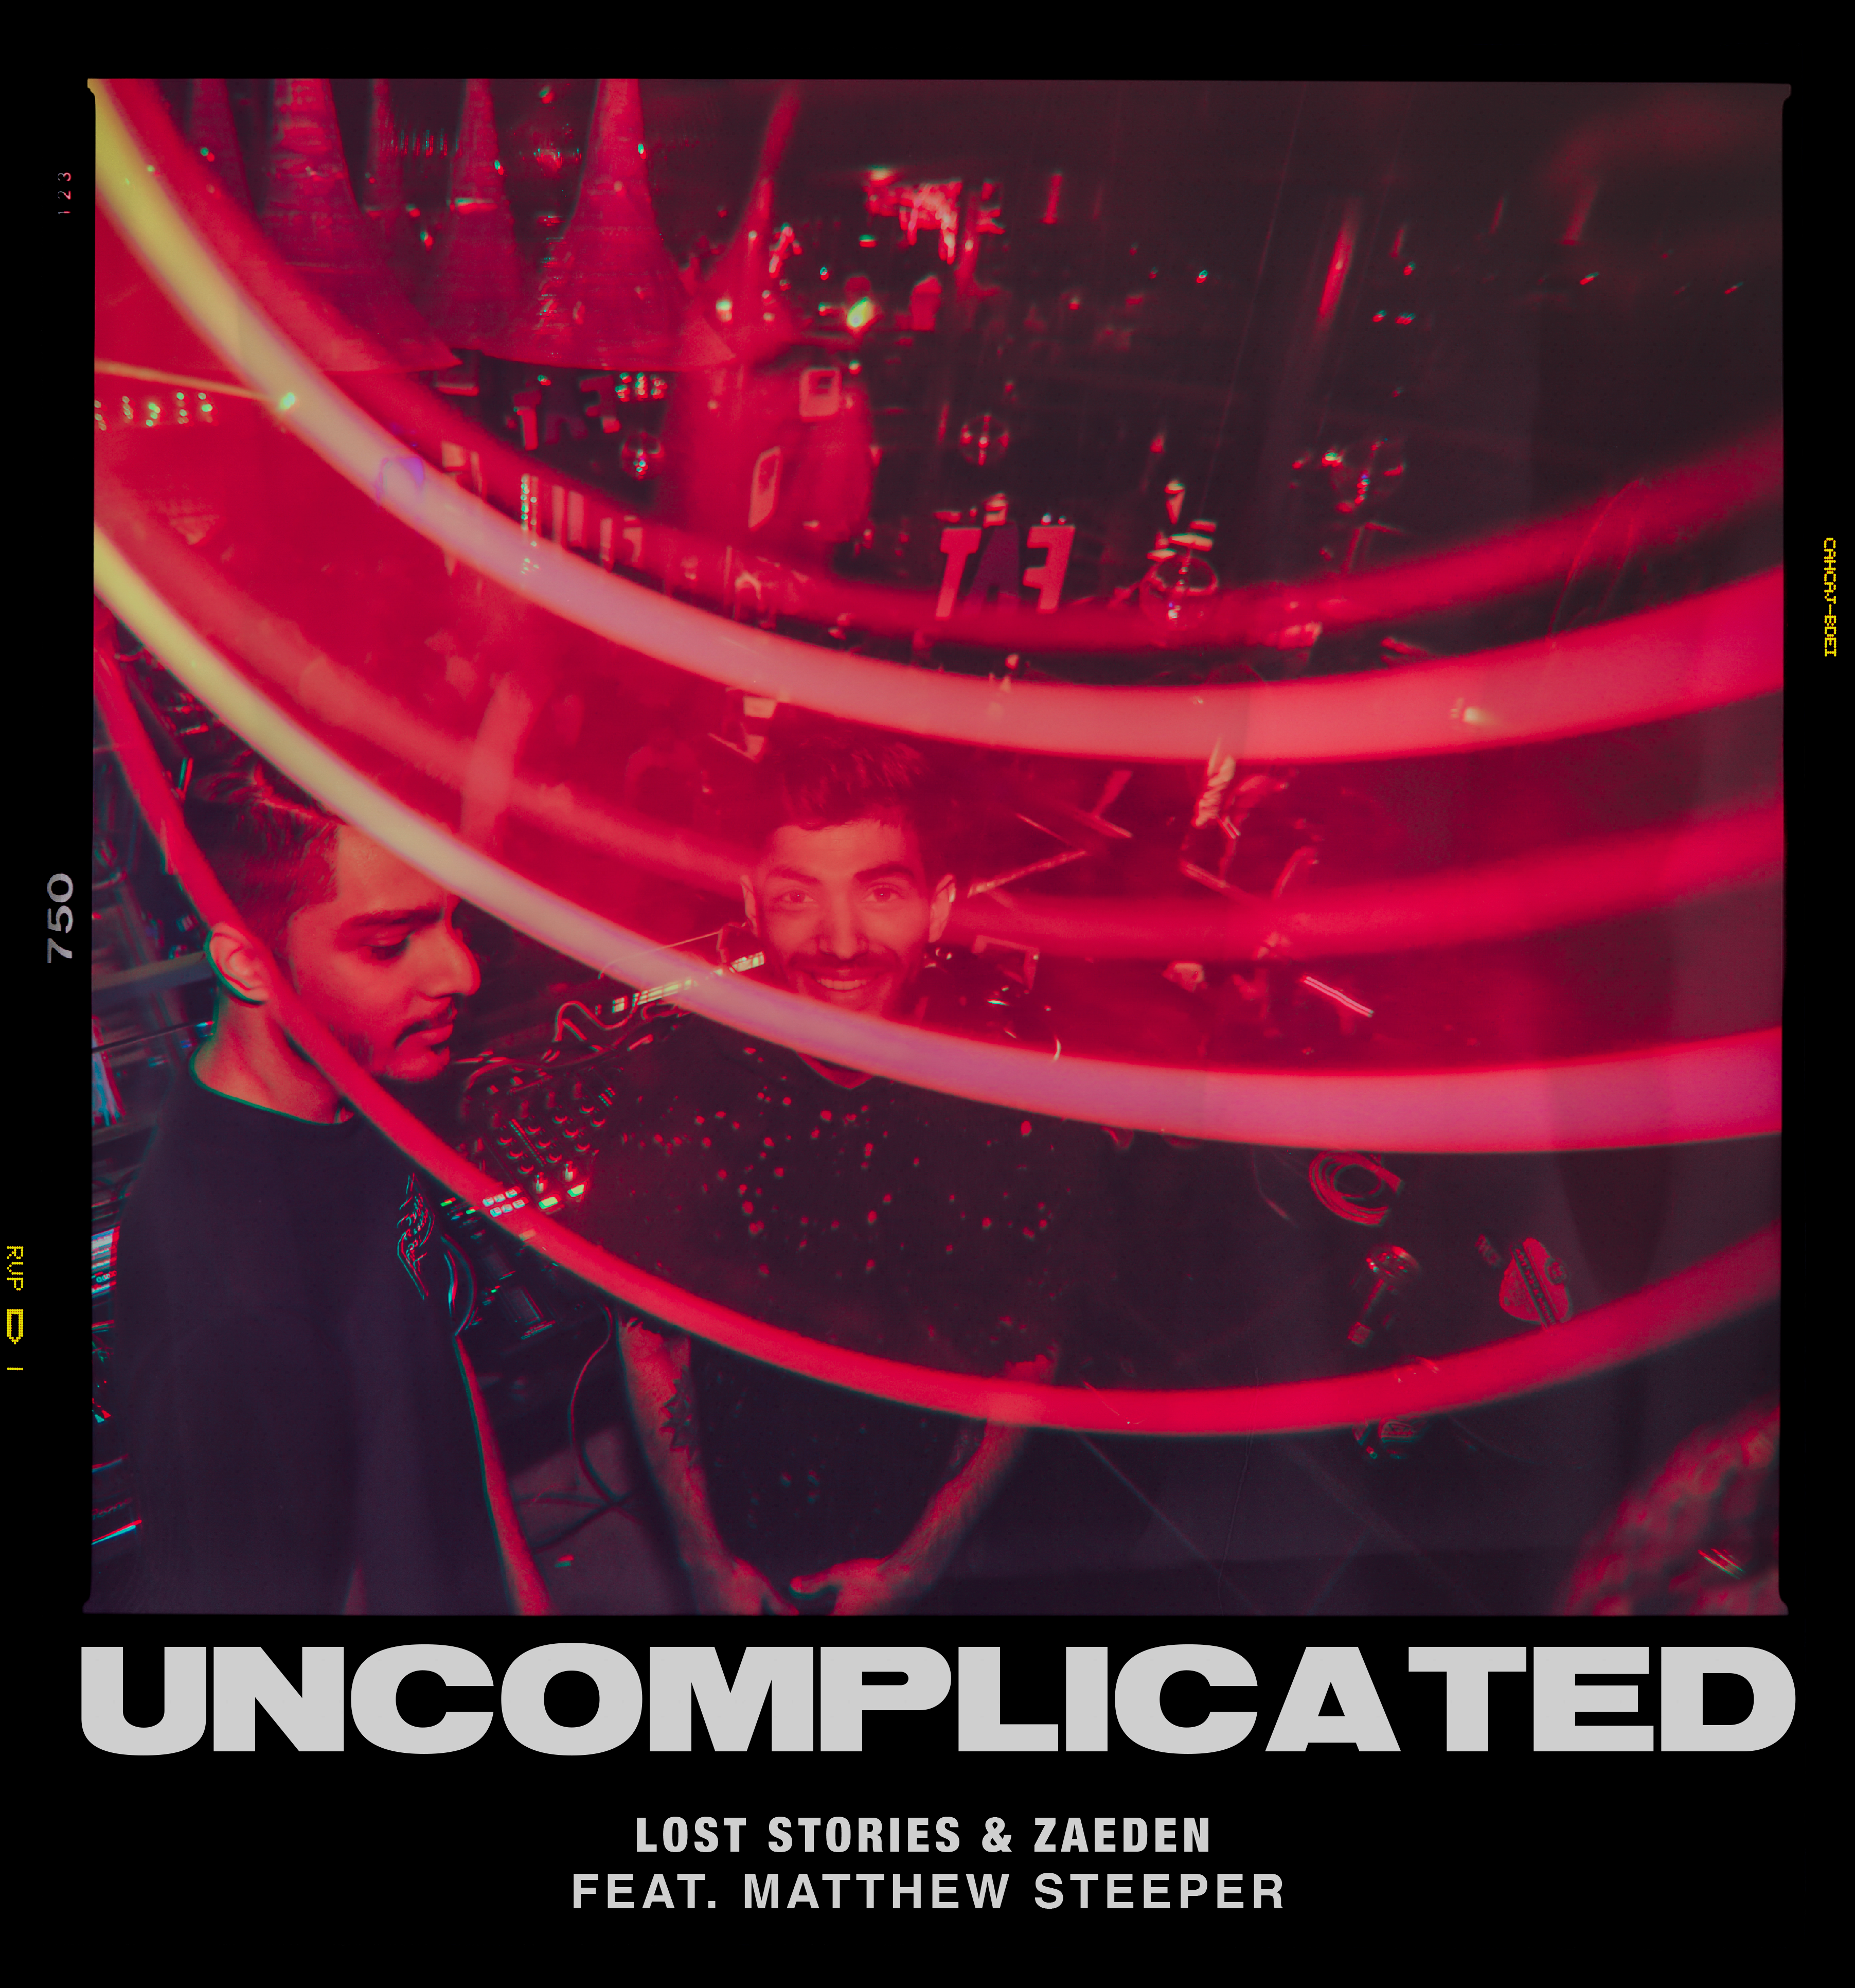 Lost Stories and Zaeden - Uncomplicated